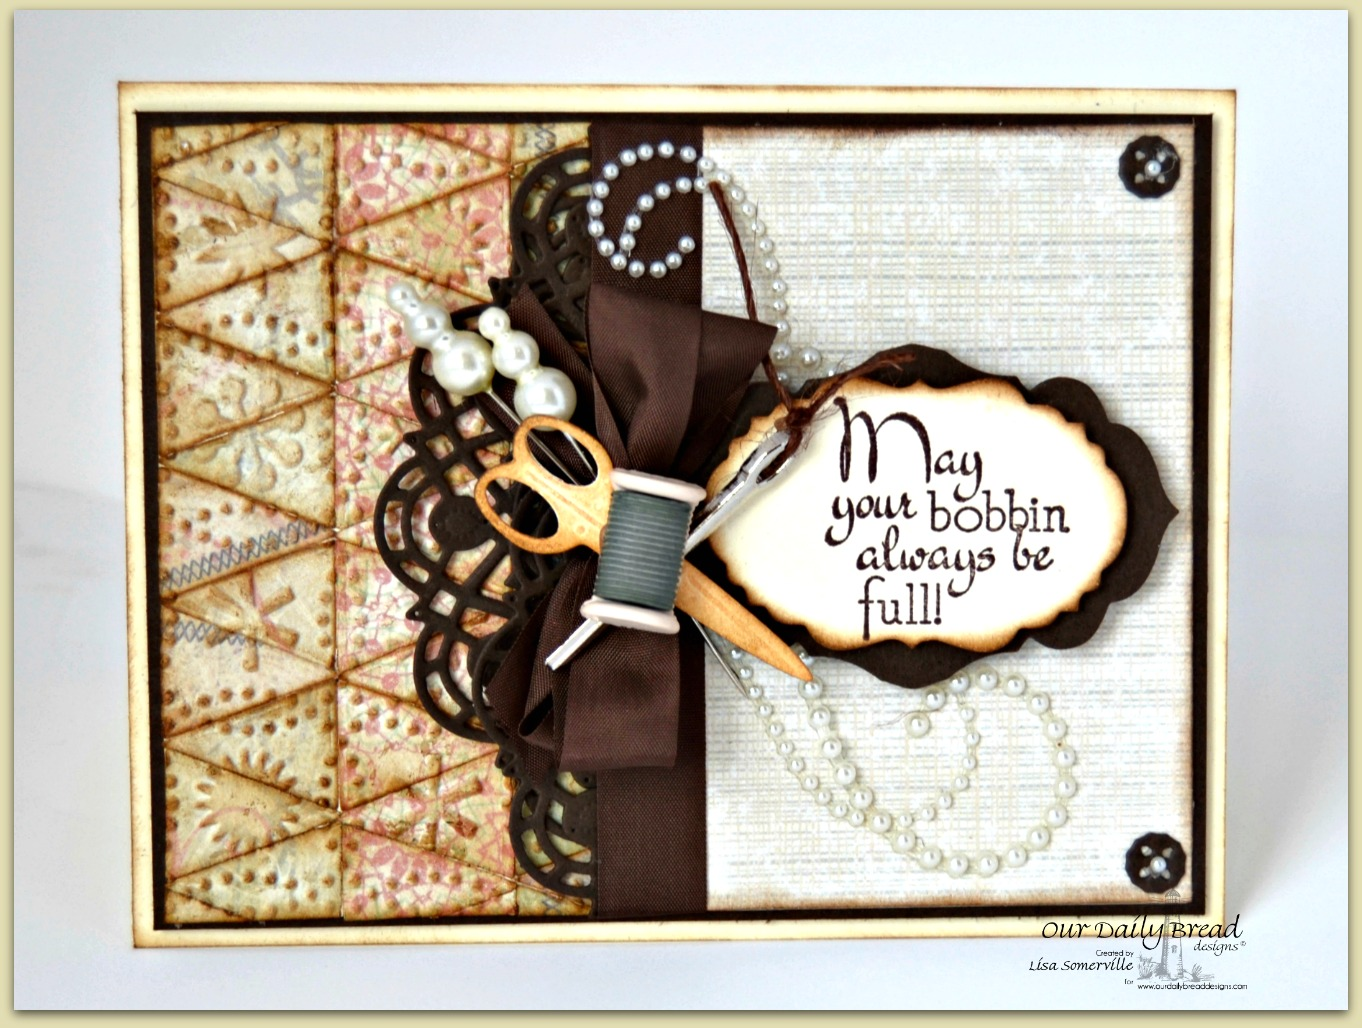 Stamps - Our Daily Bread Designs Sewing, ODBD Custom Pennant Dies, ODBD Custom Doily Die, ODBD Custom Antique Labels & Border Dies, ODBD Custom Vintage Labels Dies, ODBD Custom Apron and Tools Die, Soulful Stitches Paper Collection